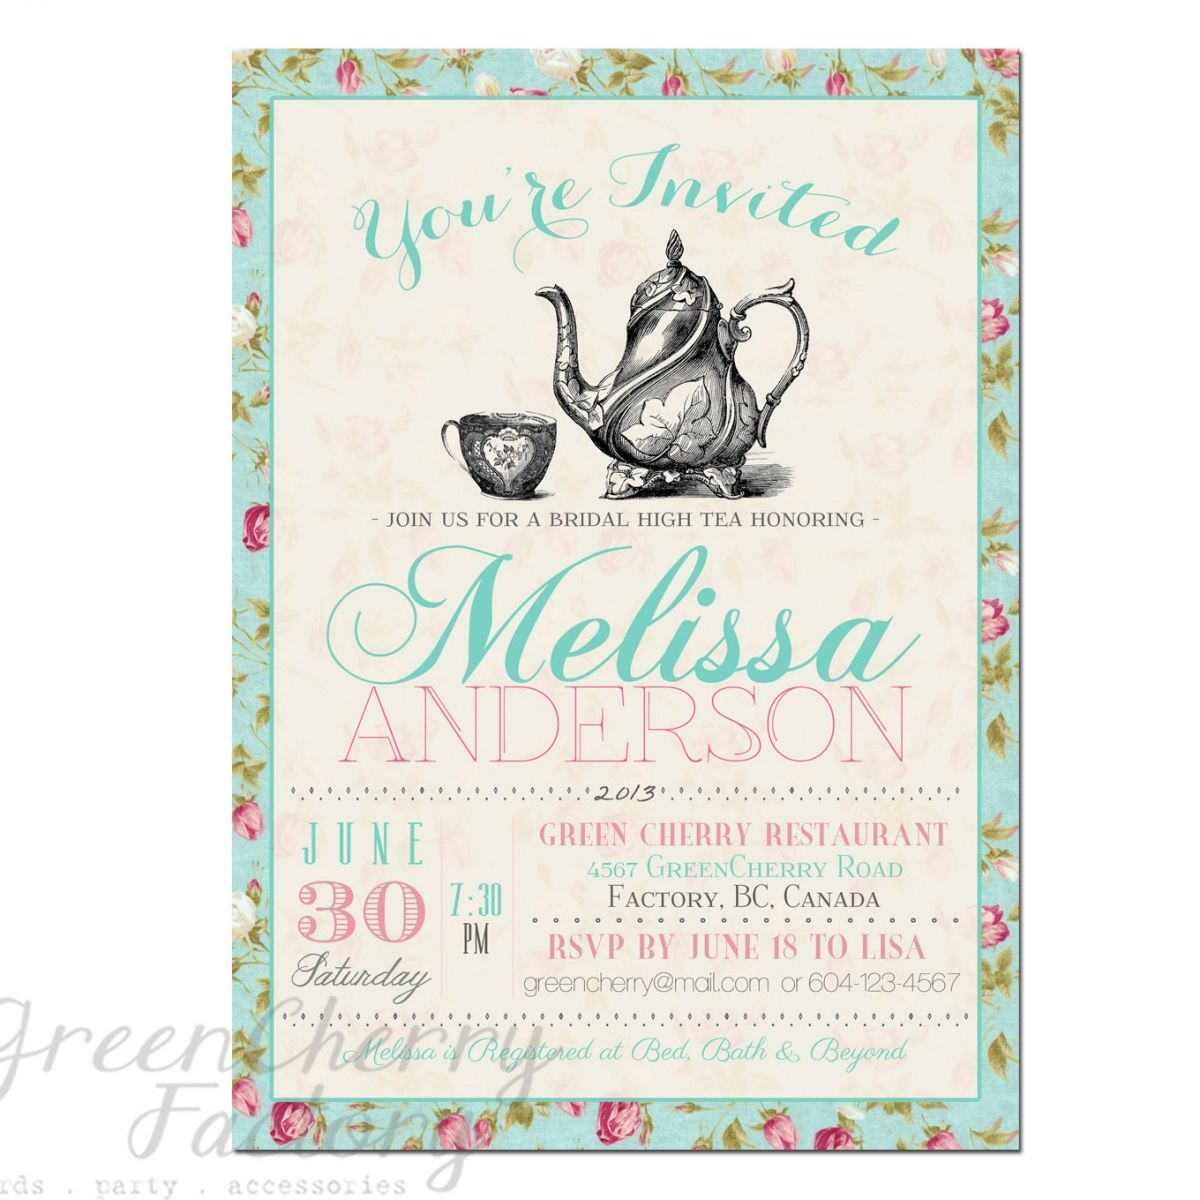 Tea party invitation templates to print free printable tea party items similar to tea party invitation typography high tea bridal shower invite birthday baby shower invitation printable on etsy filmwisefo Choice Image